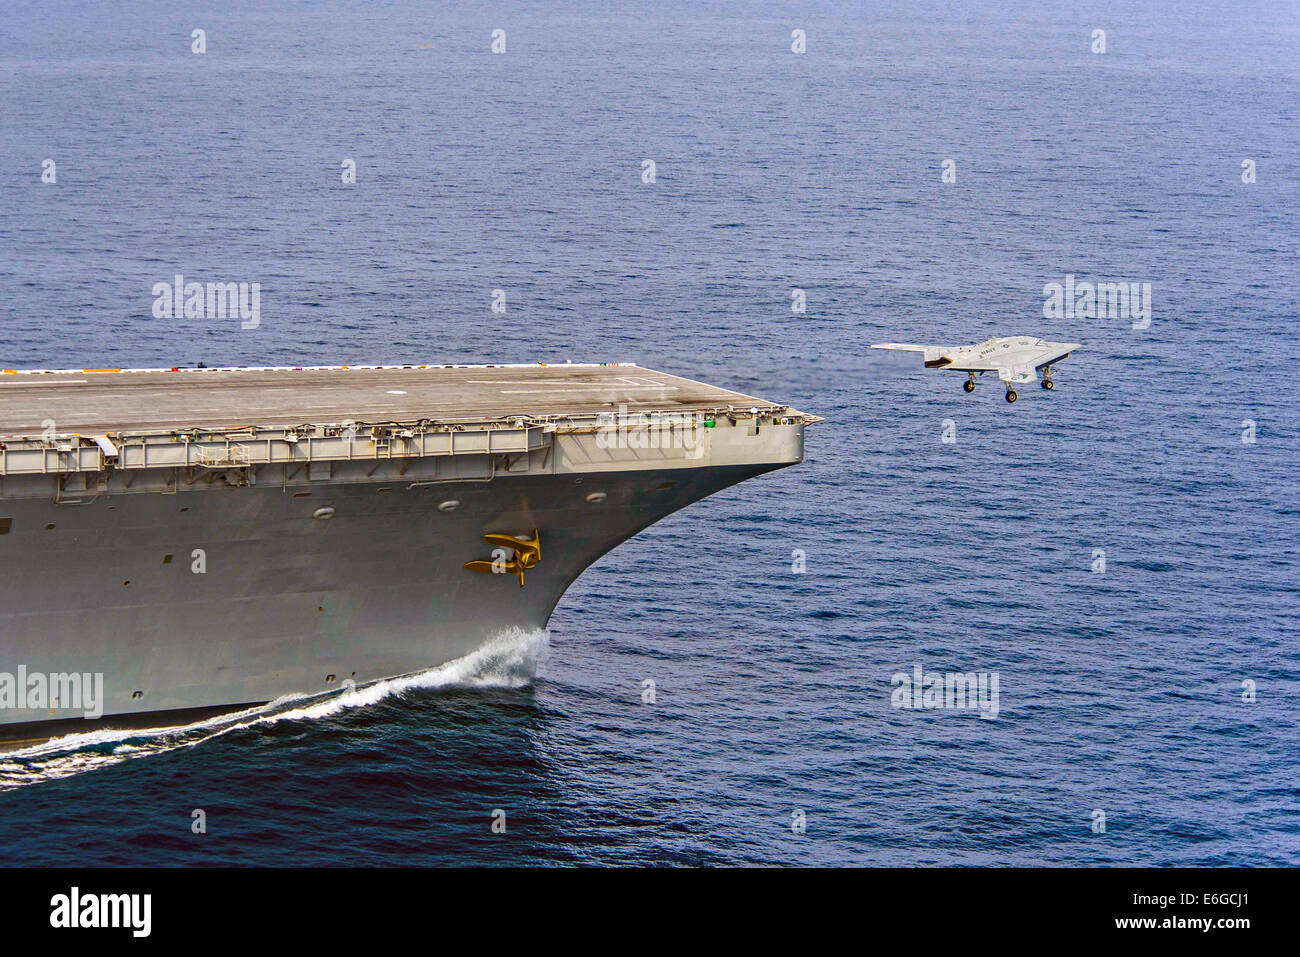 The US Navy X-47B autonomous stealth unmanned aerial vehicle takes off from the flight deck of the aircraft carrier - Stock Image